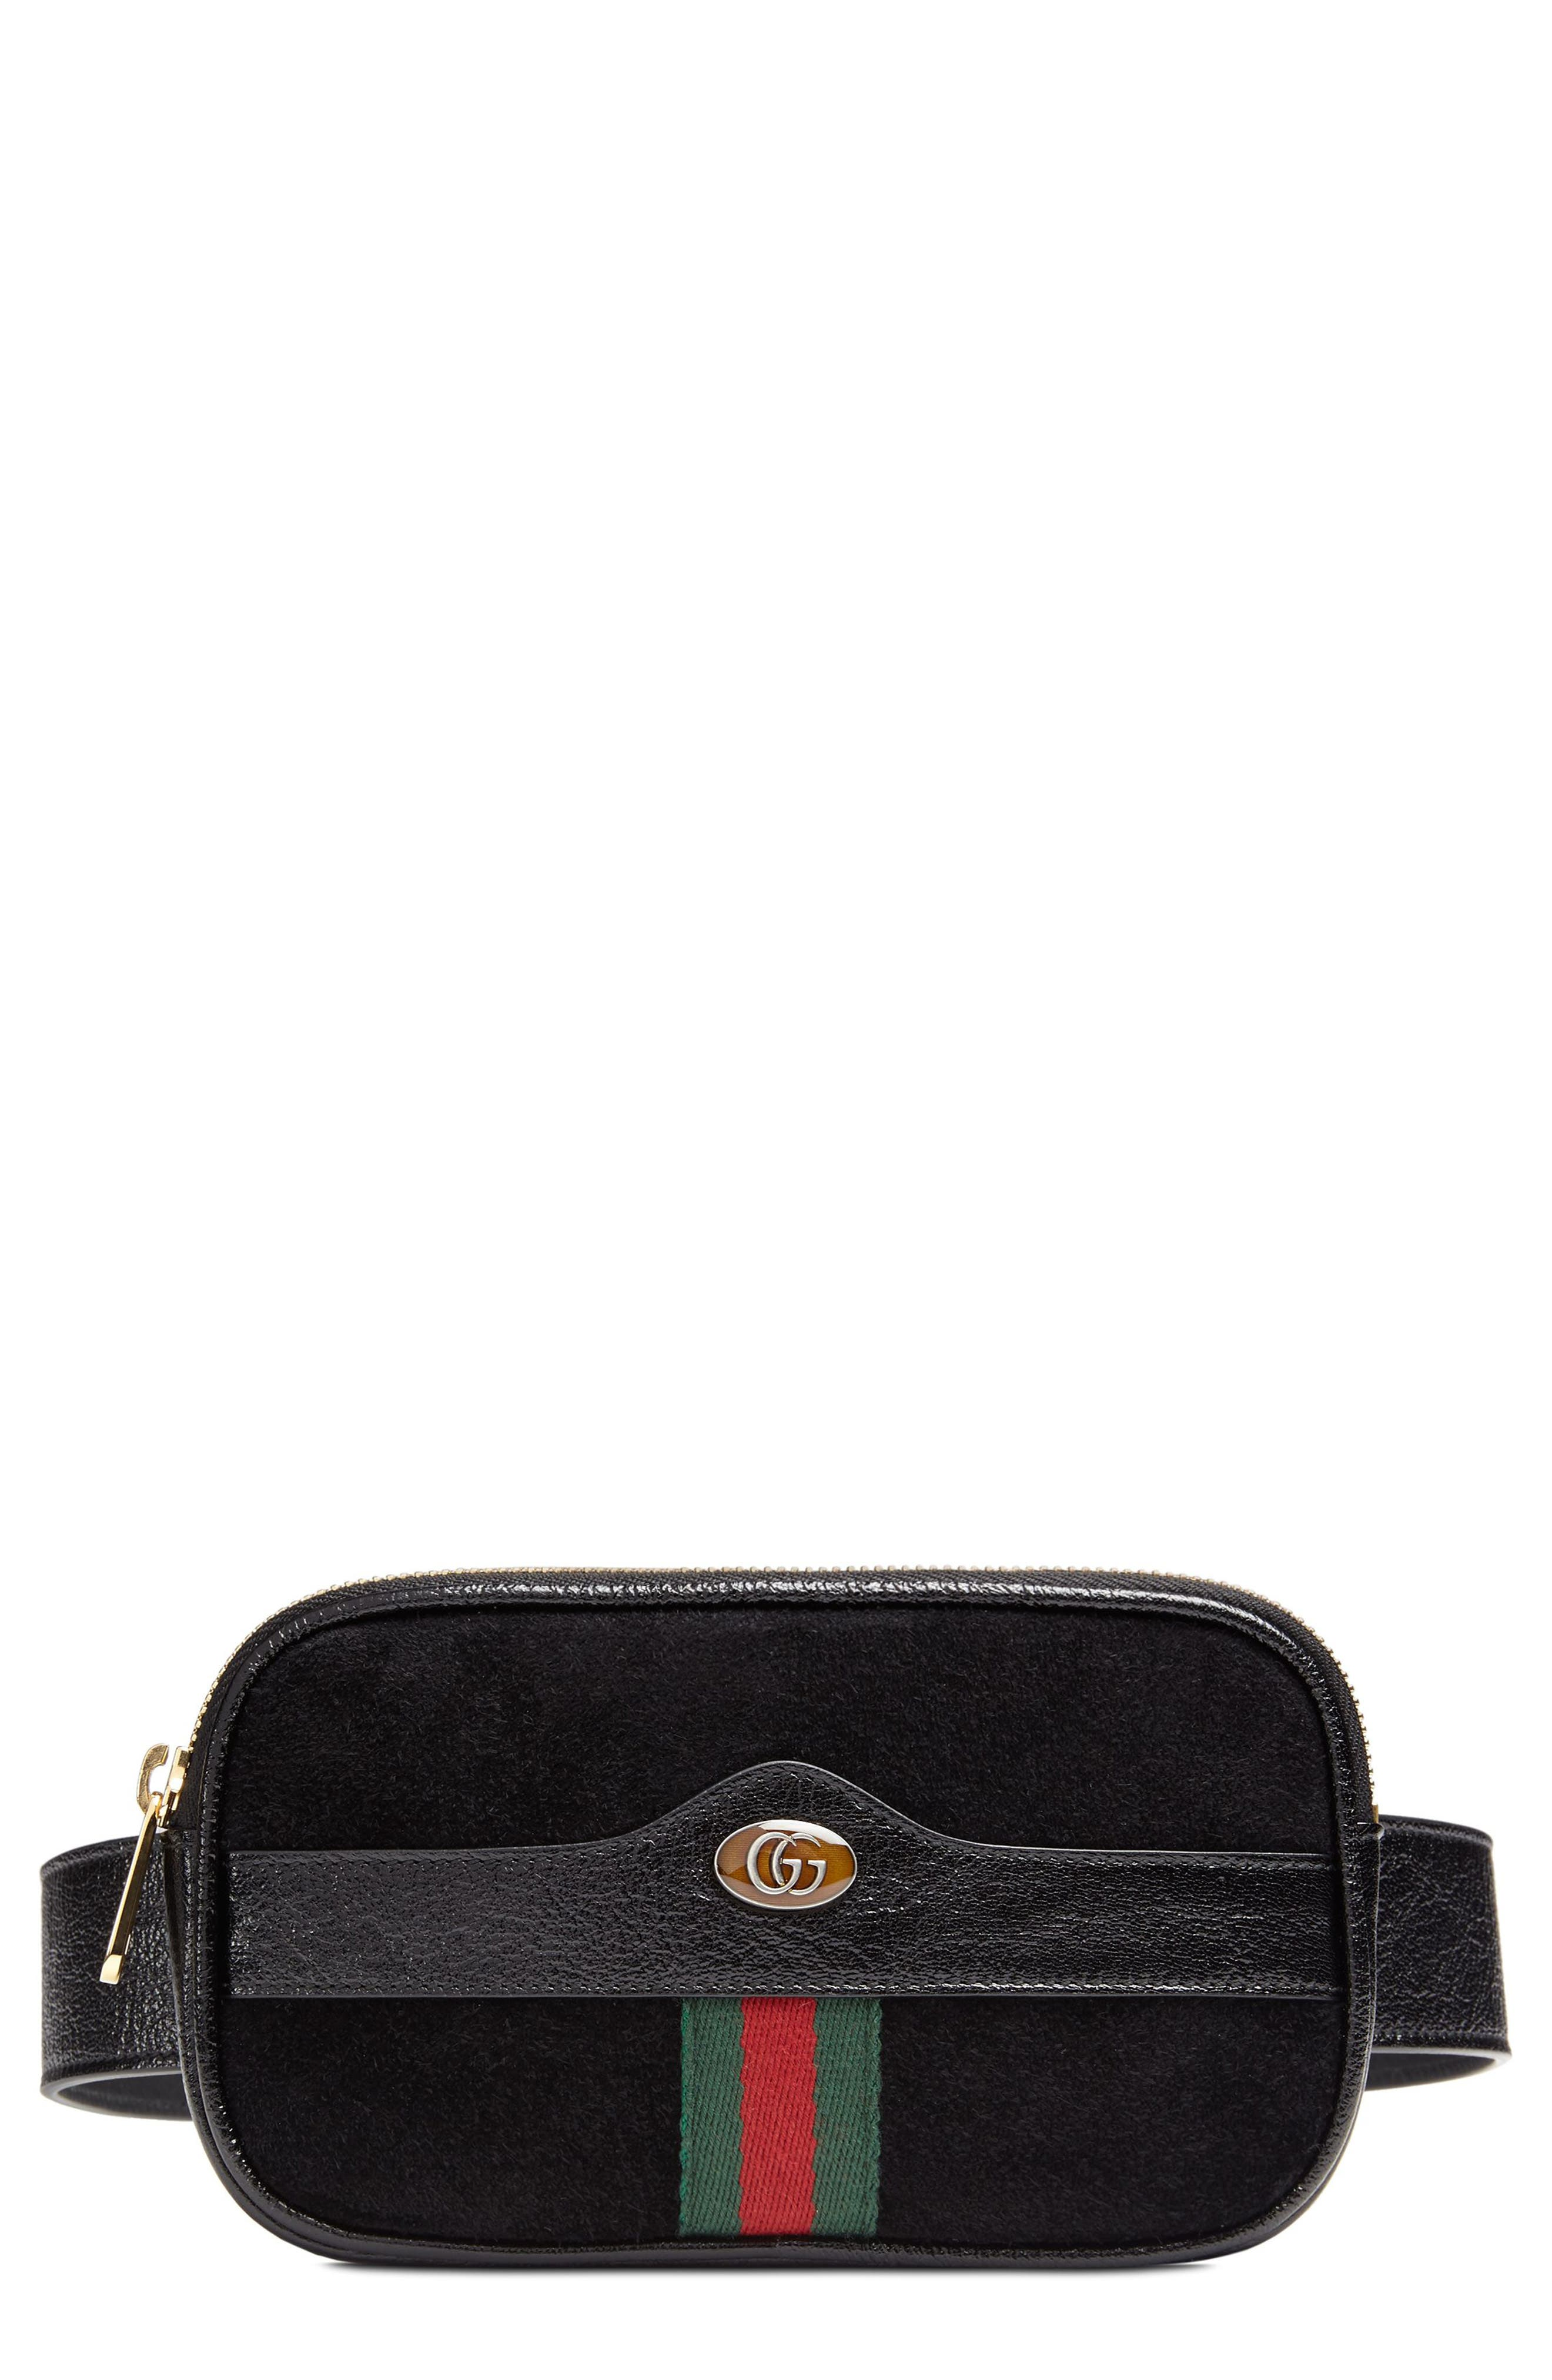 Ophidia Suede & Leather Belt Bag,                             Main thumbnail 1, color,                             NERO/ VERT/ RED